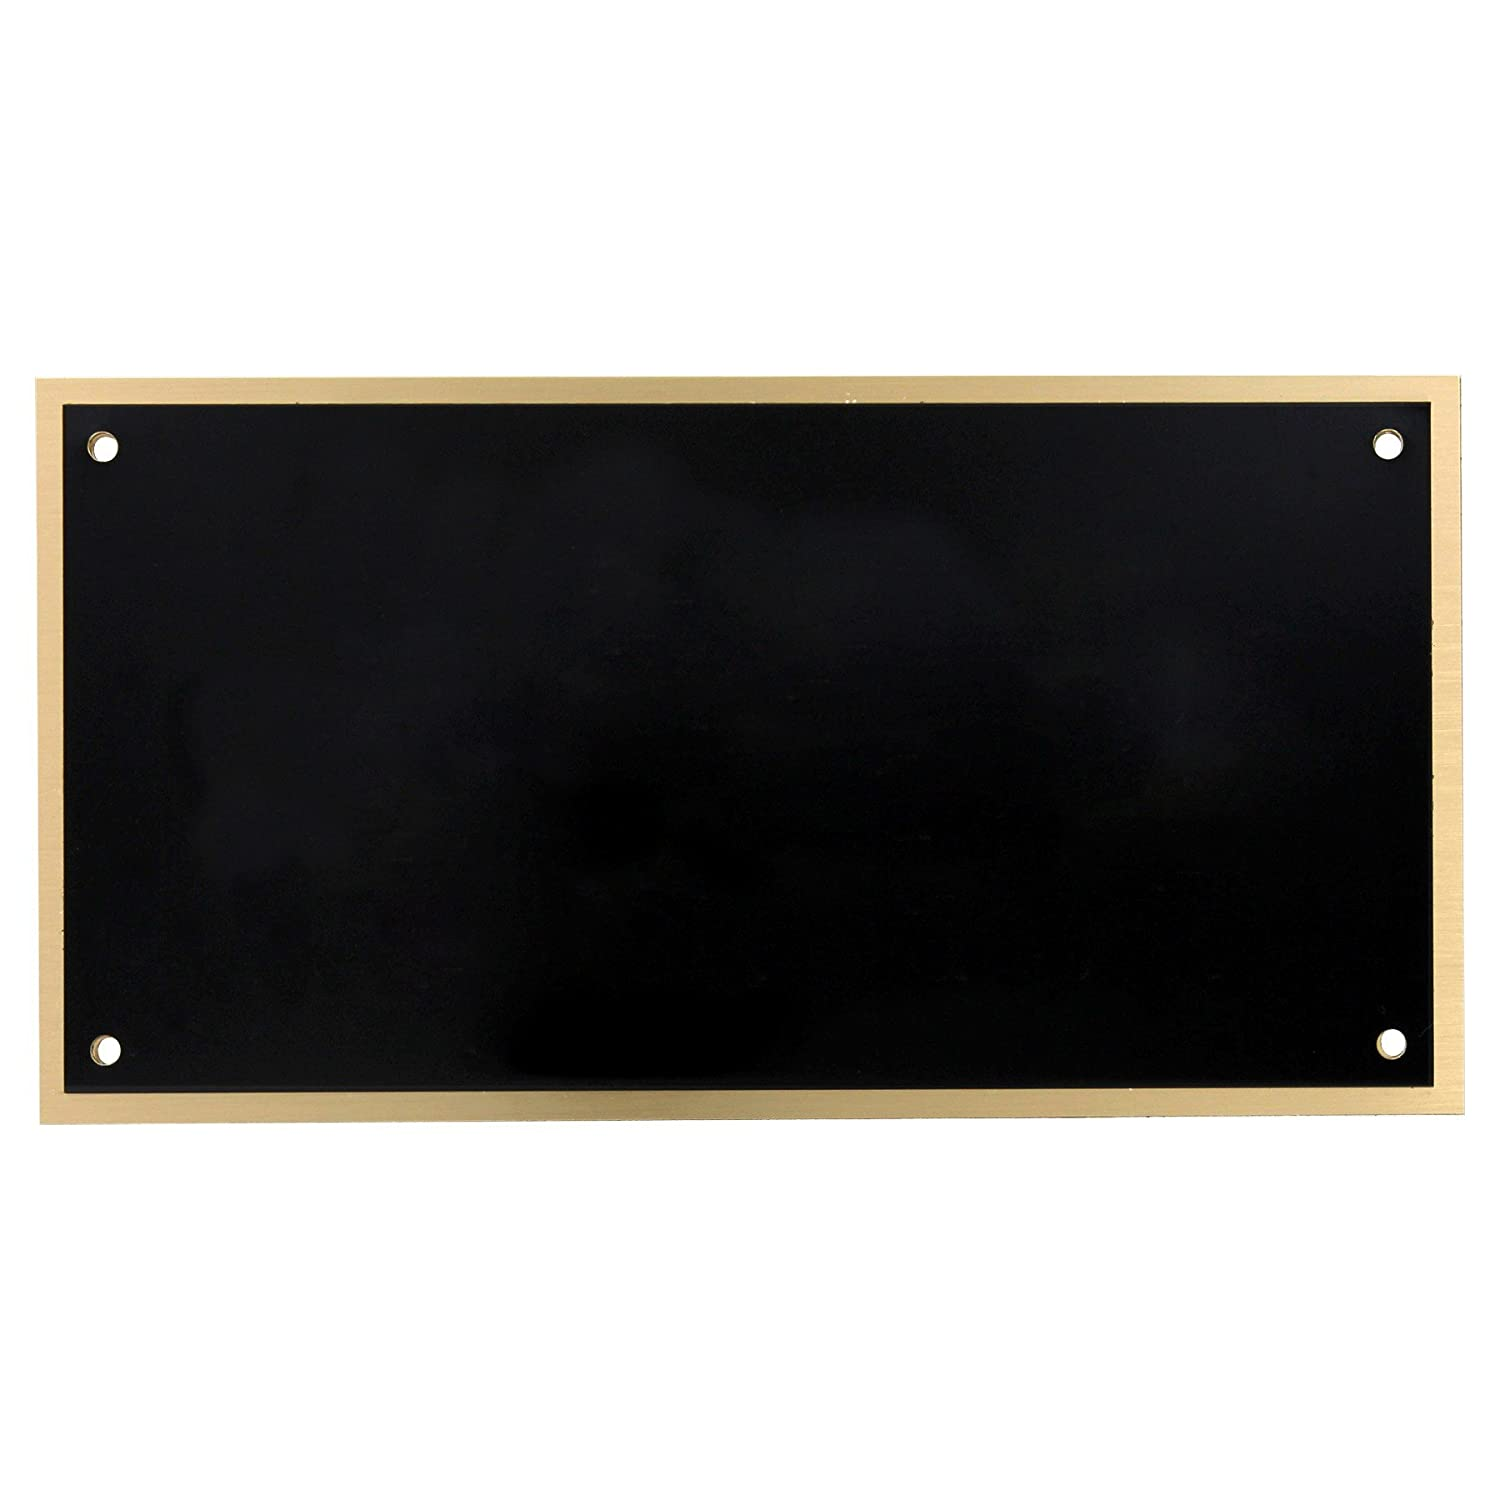 Blank Large Black-on-Brass Engraving Plate Online Stores